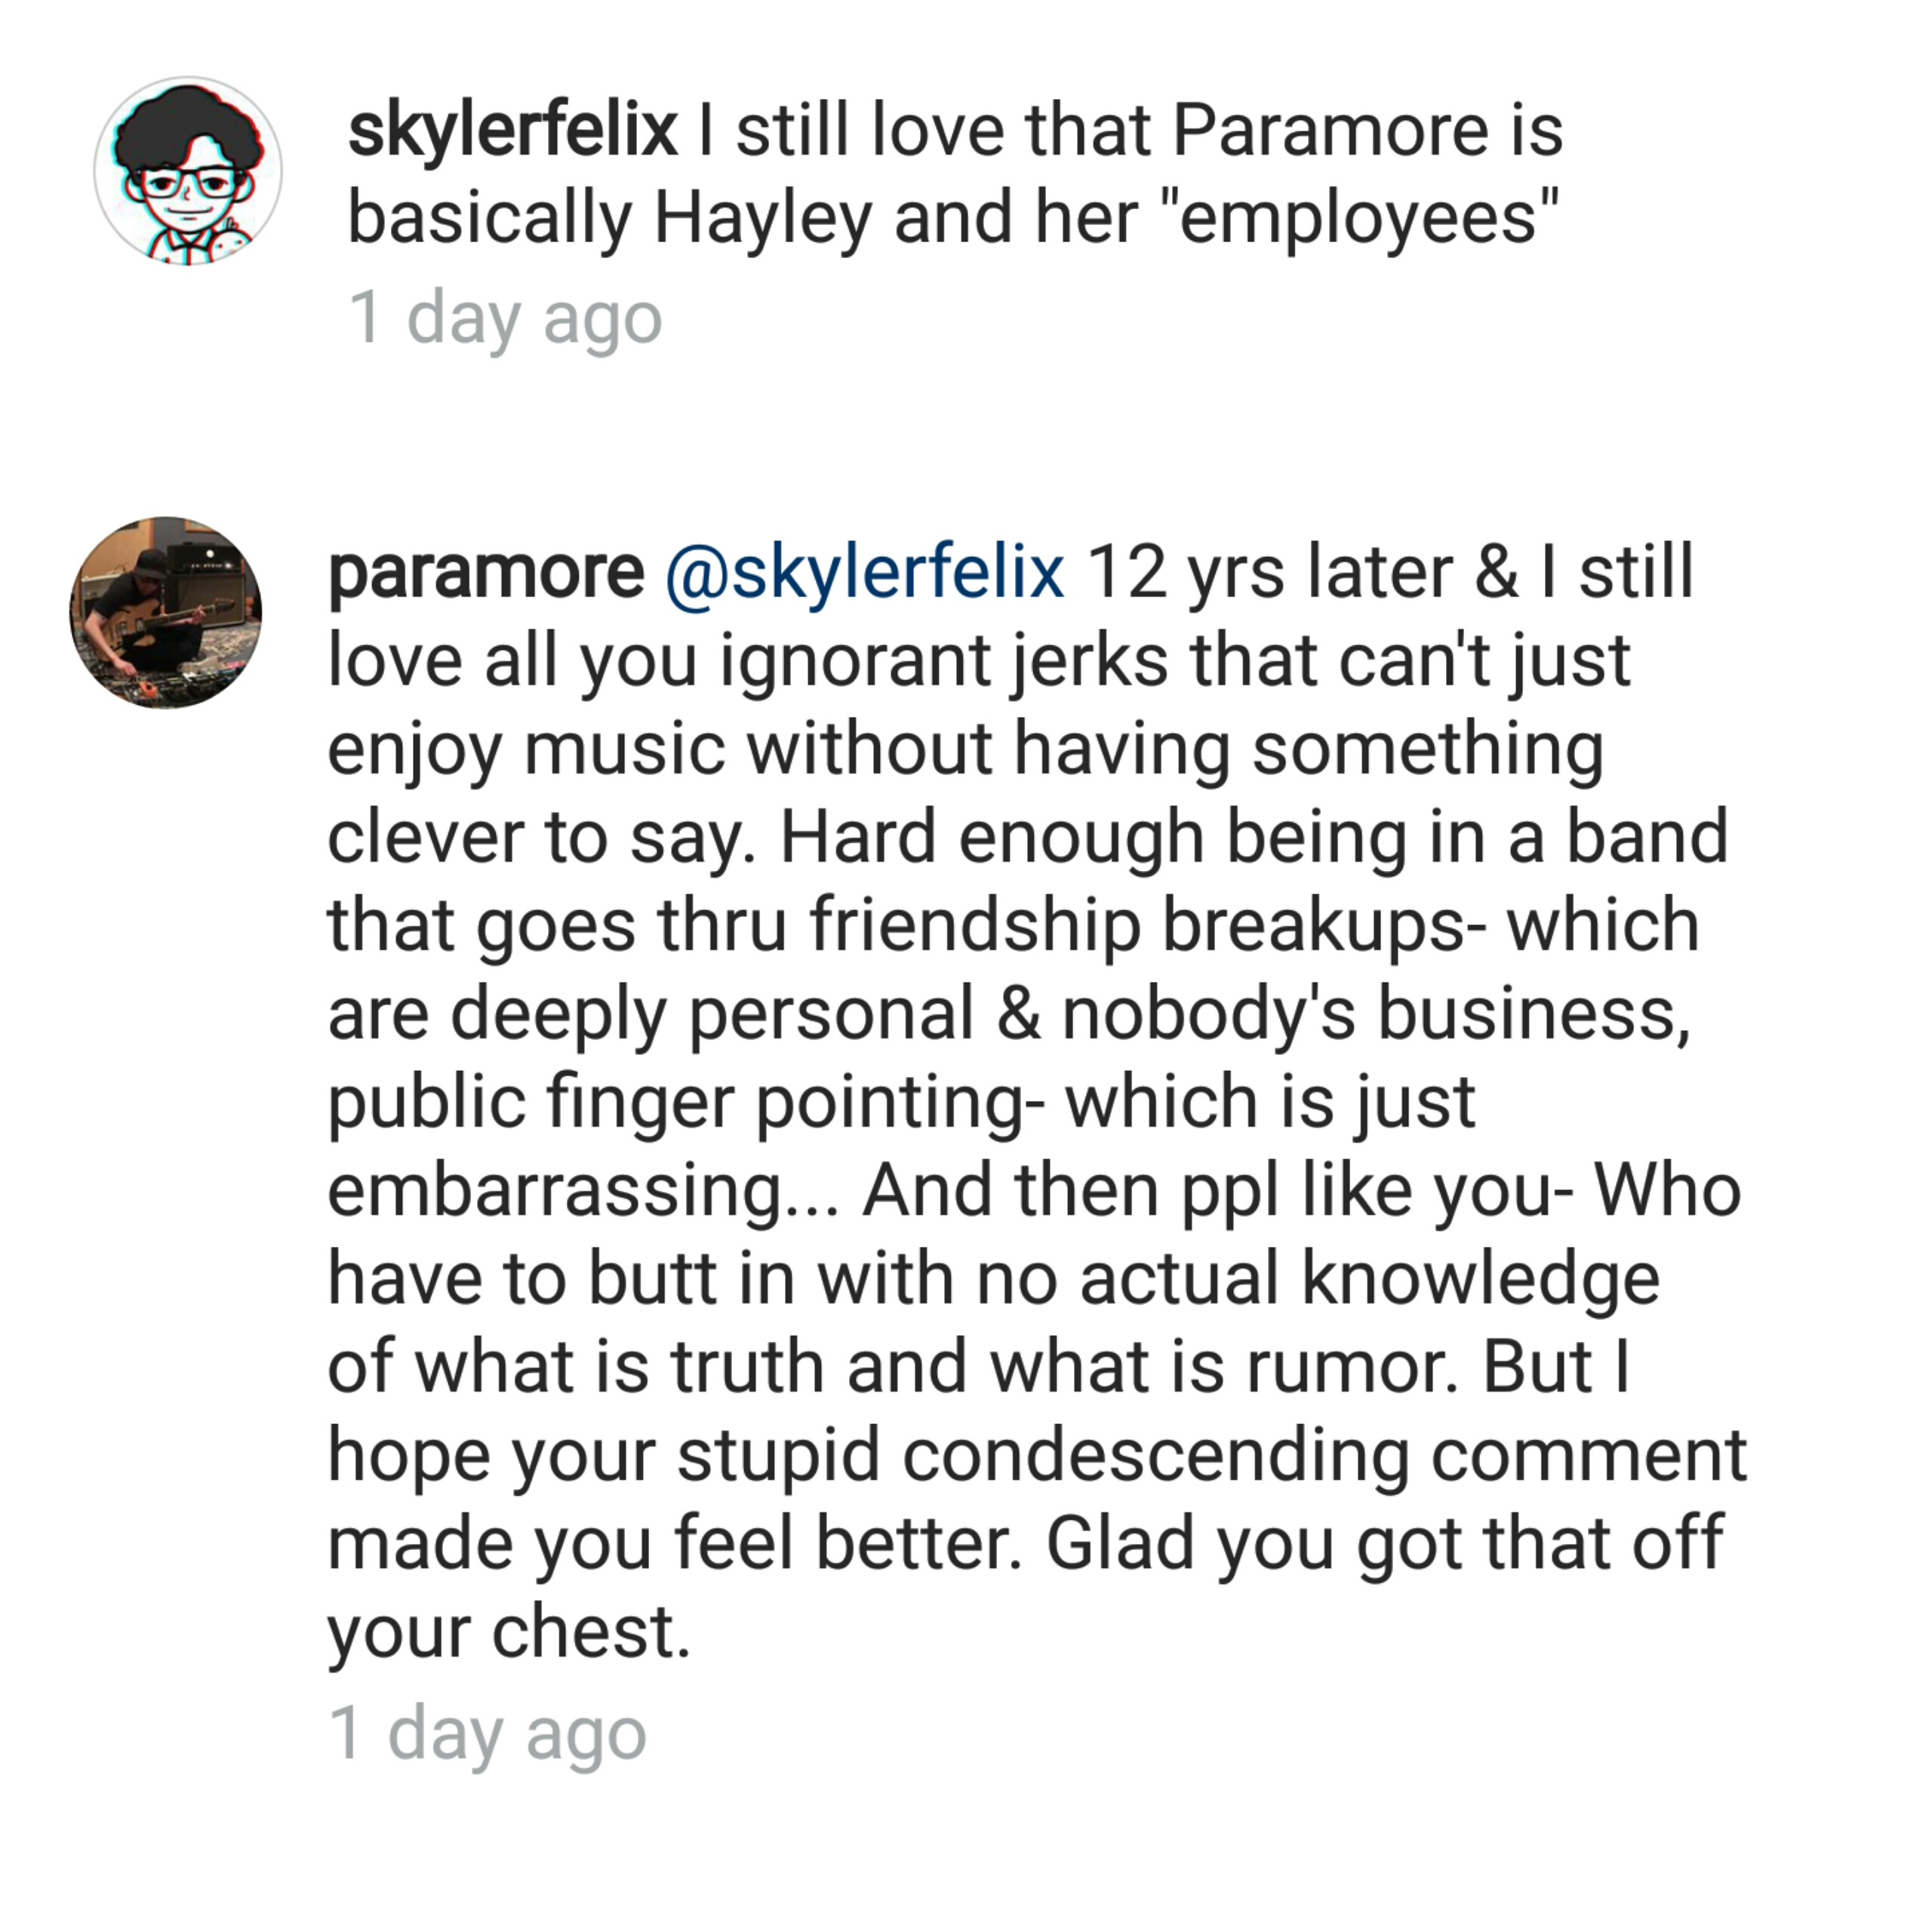 paramore instagram comment